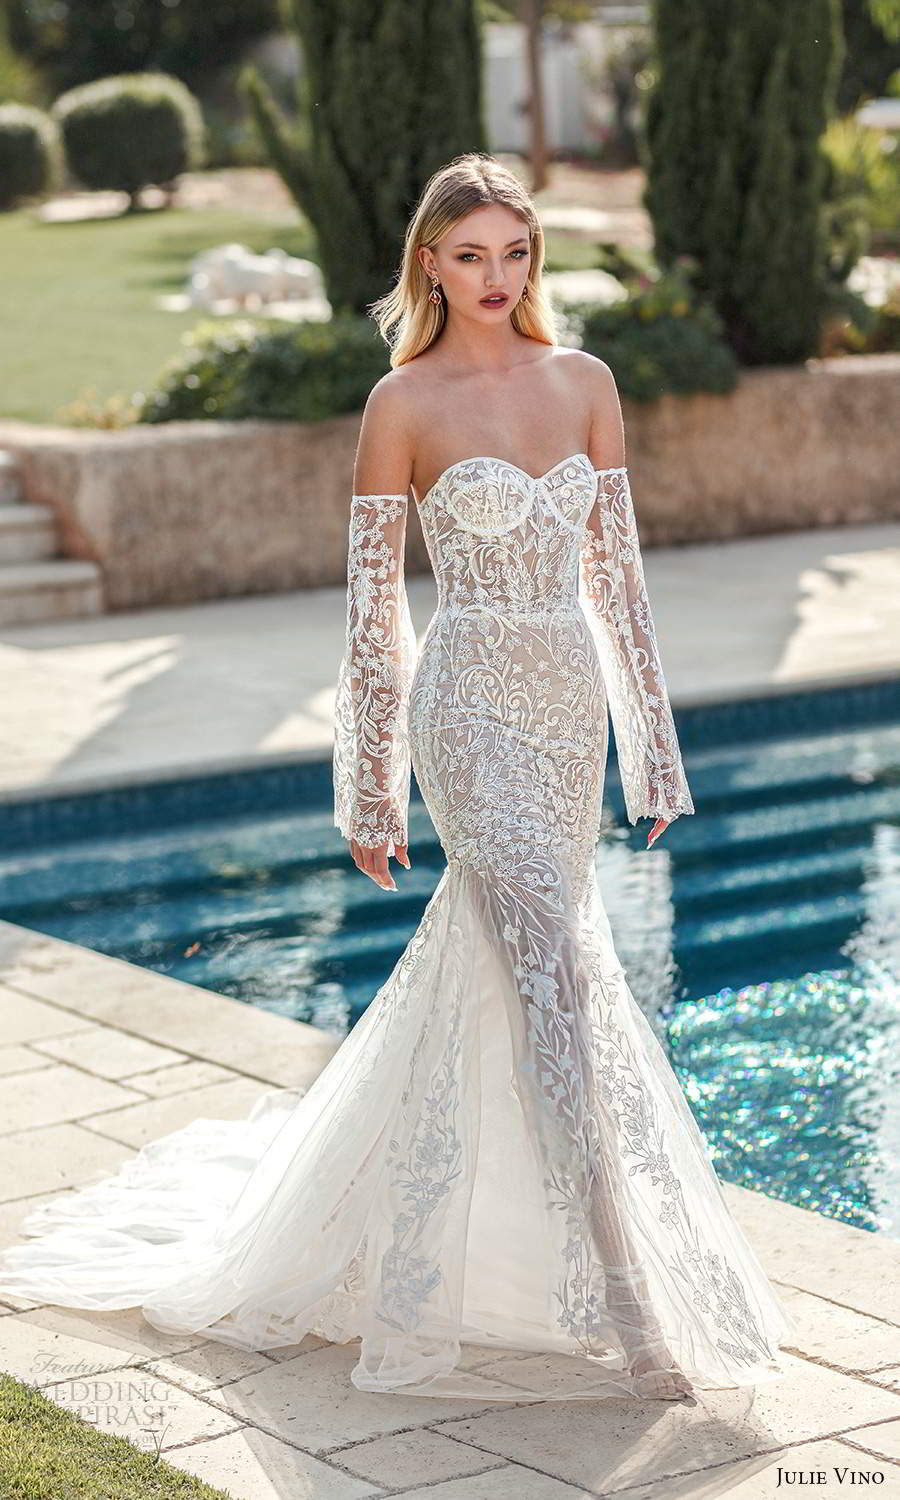 julie vino 2021 romanzo bridal detached long flare sleeves strapless sweetheart neckline fully embellished lace sheath wedding dress chapel train (7) mv